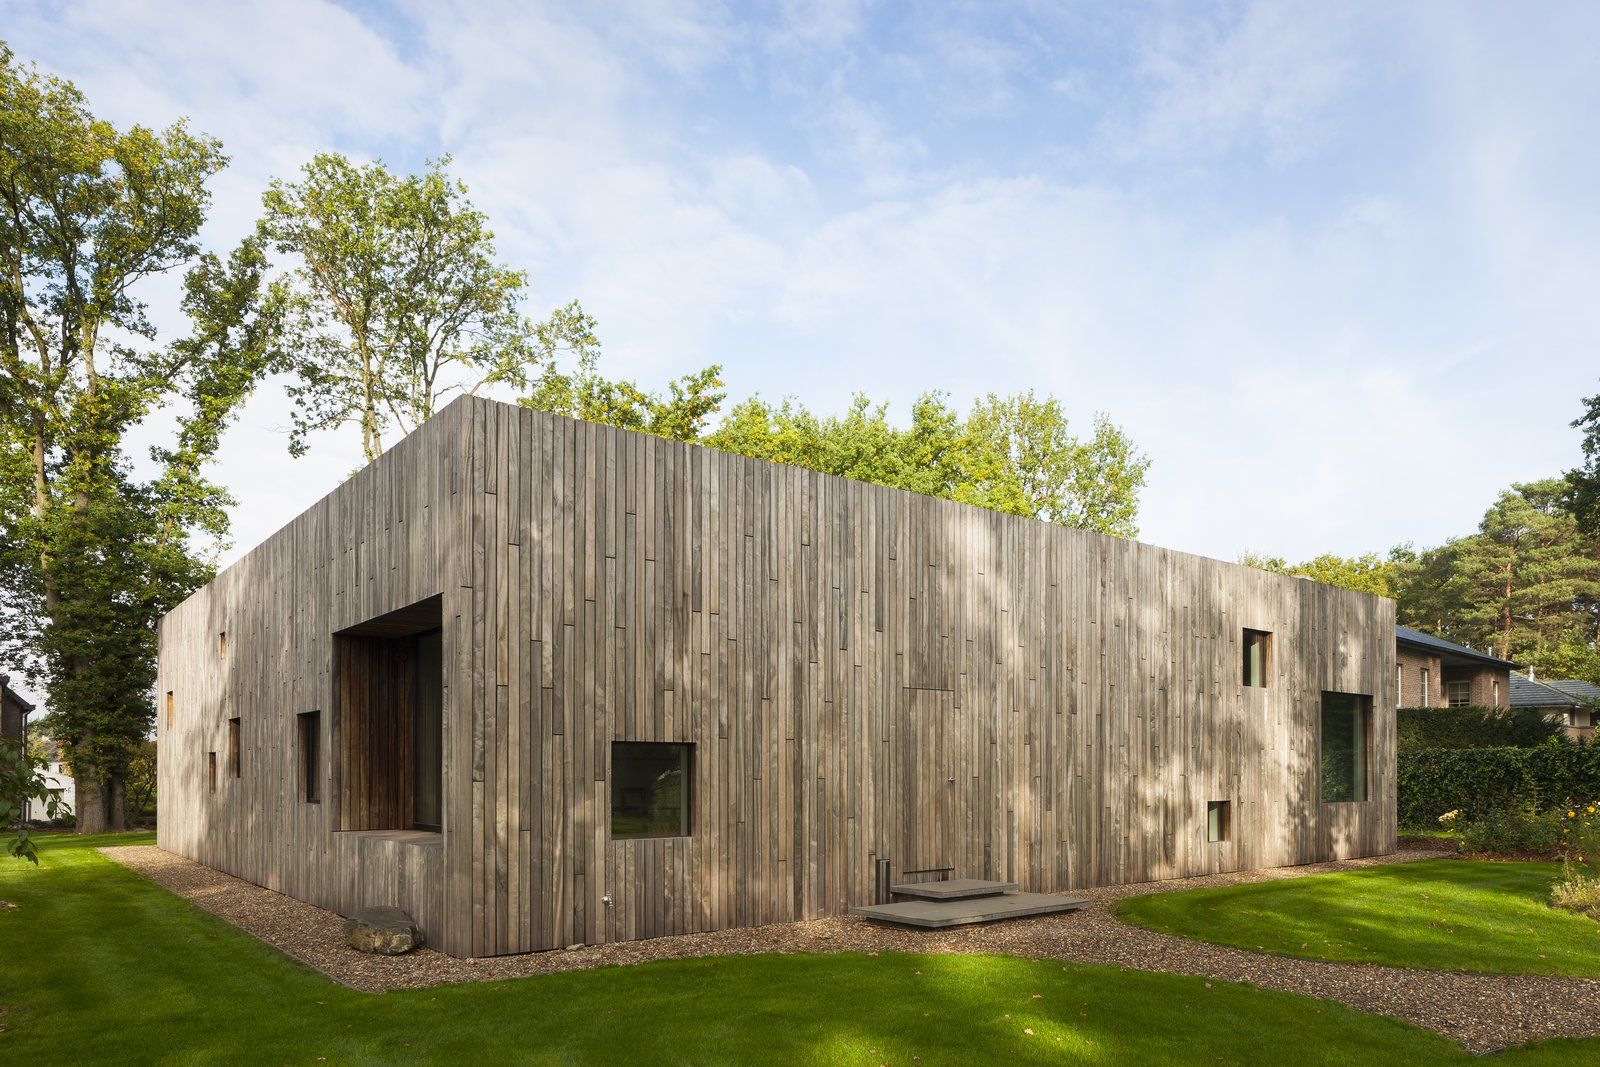 Several square perforations of varied sizes along wooden facade serve as windows.